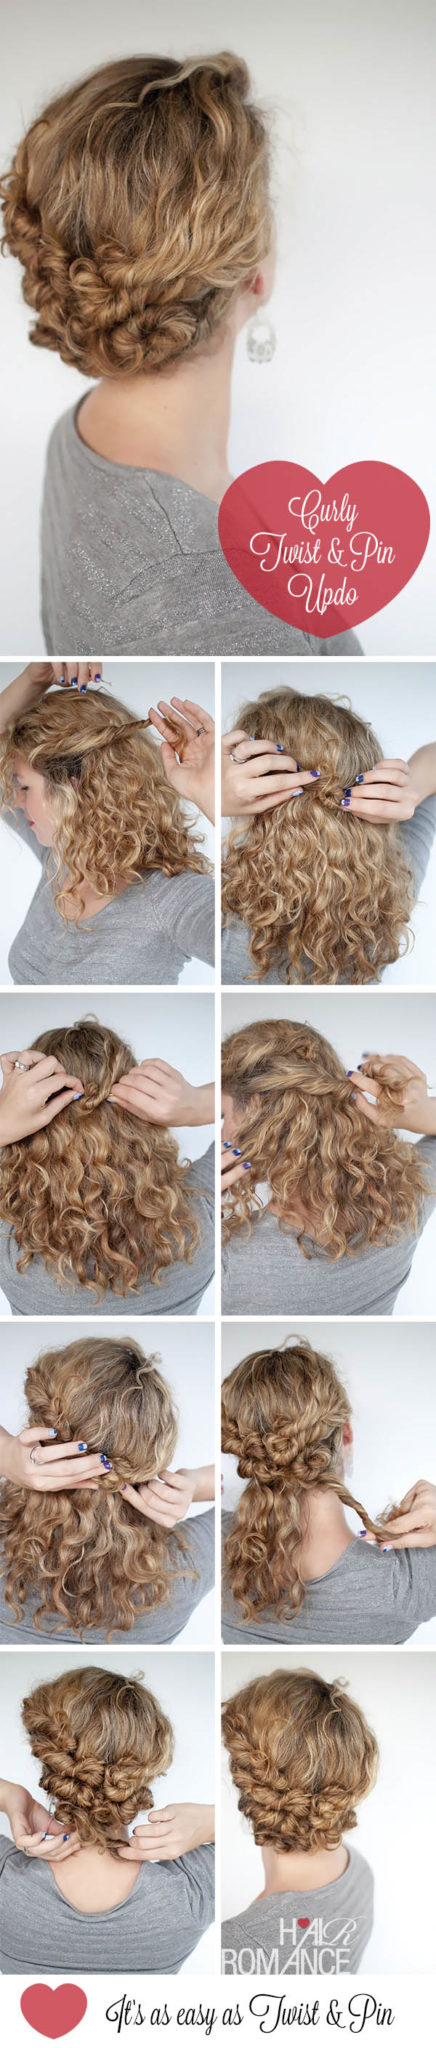 Easy Updos For Long Curly Frizzy Hair : Easy travel hairstyles how to twist and pin updo her